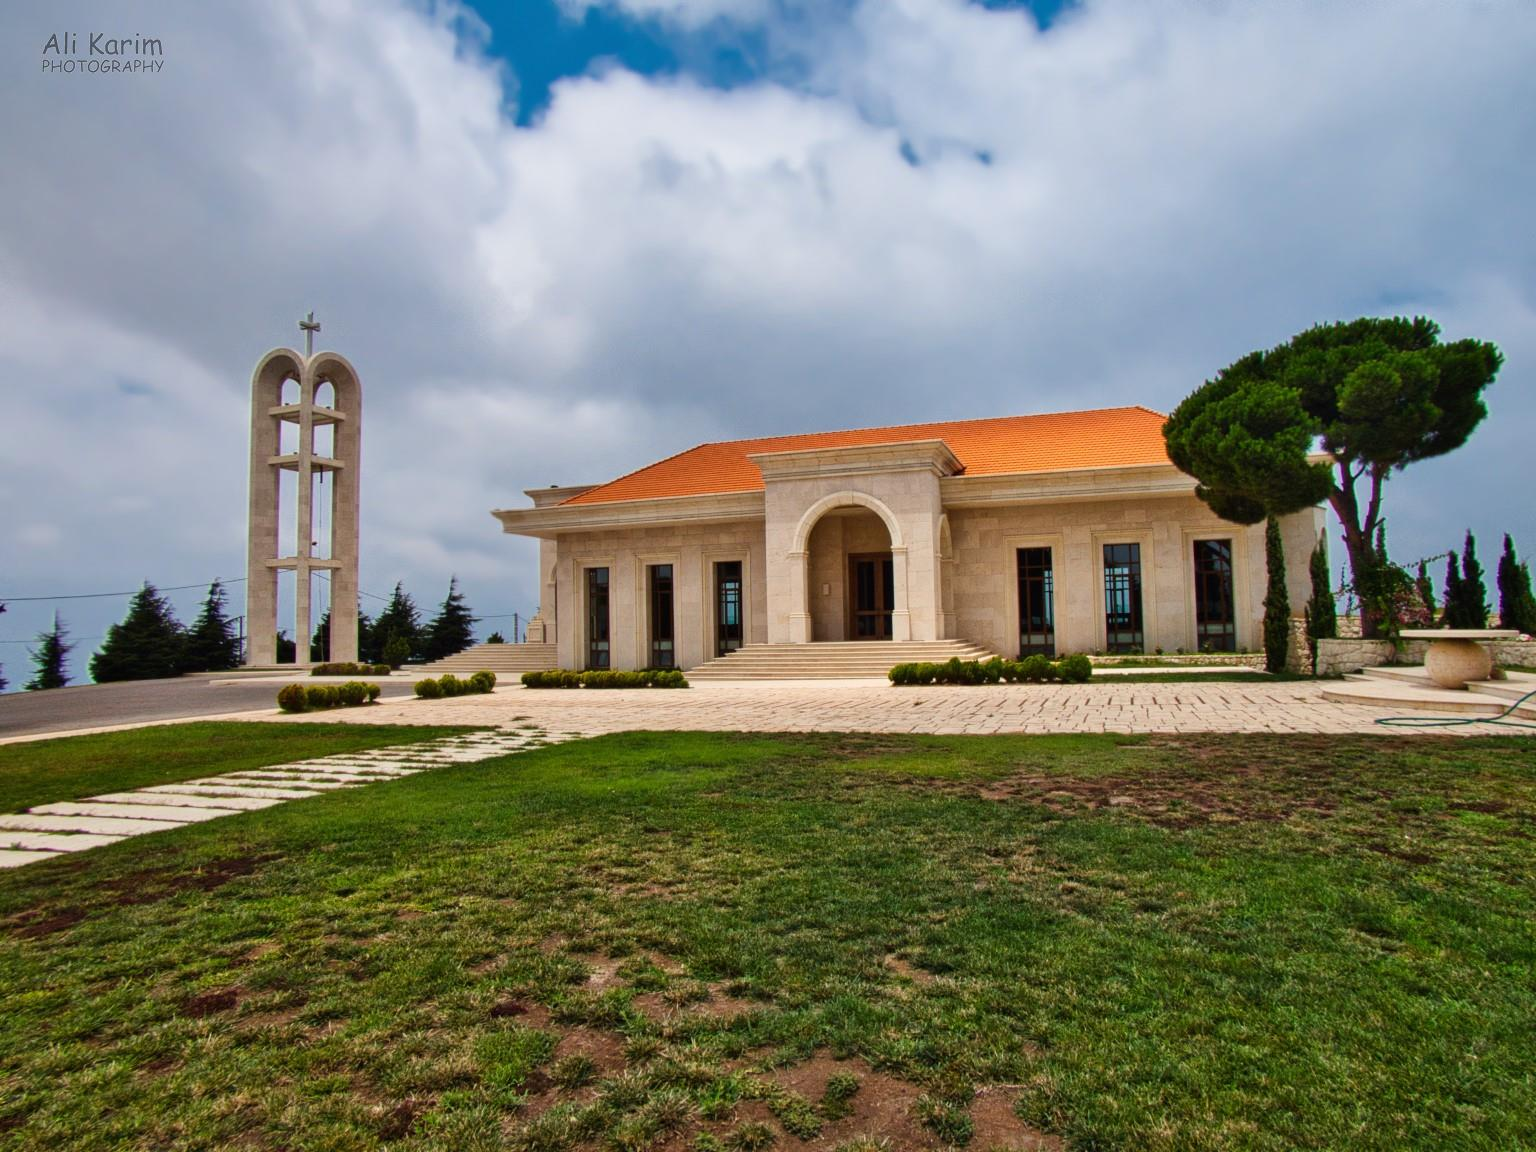 Beirut to Tripoli Mar Mema church in Bentael